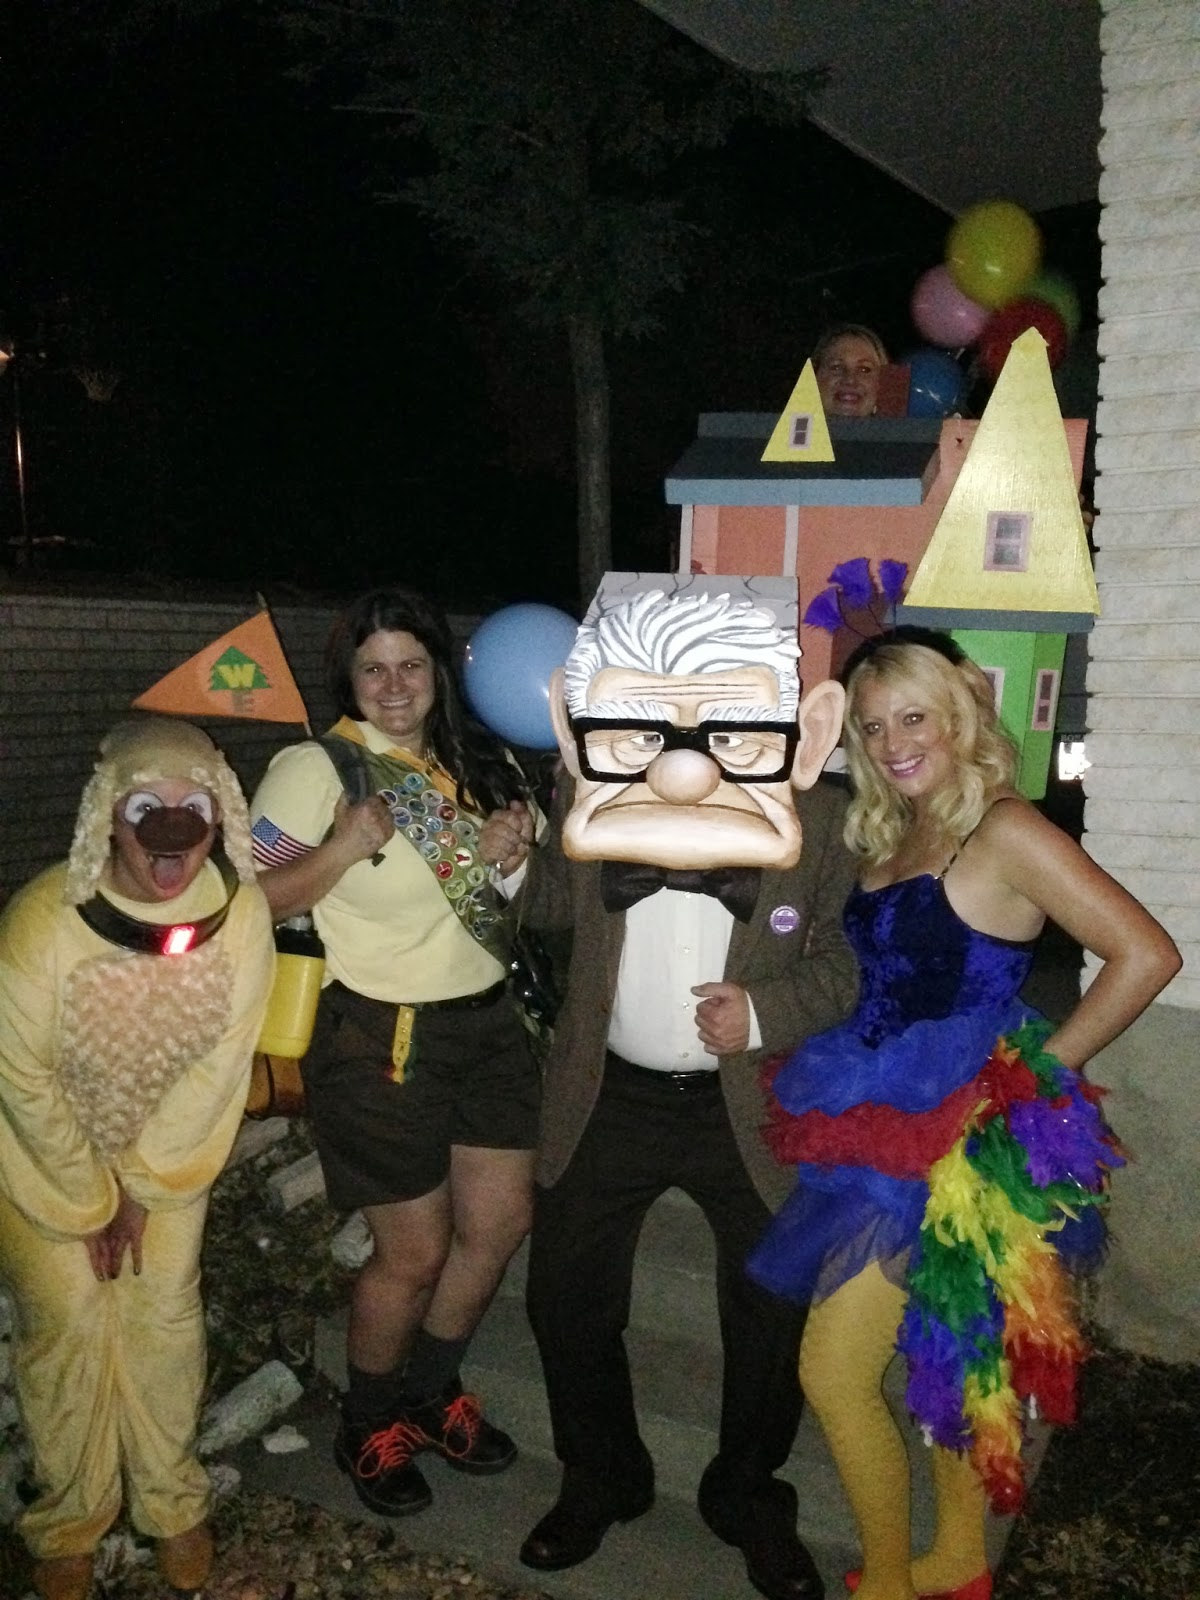 my friends wanted to join in the fun and so in just a weeks time they put together their costumes of the rest of the up characters including the house